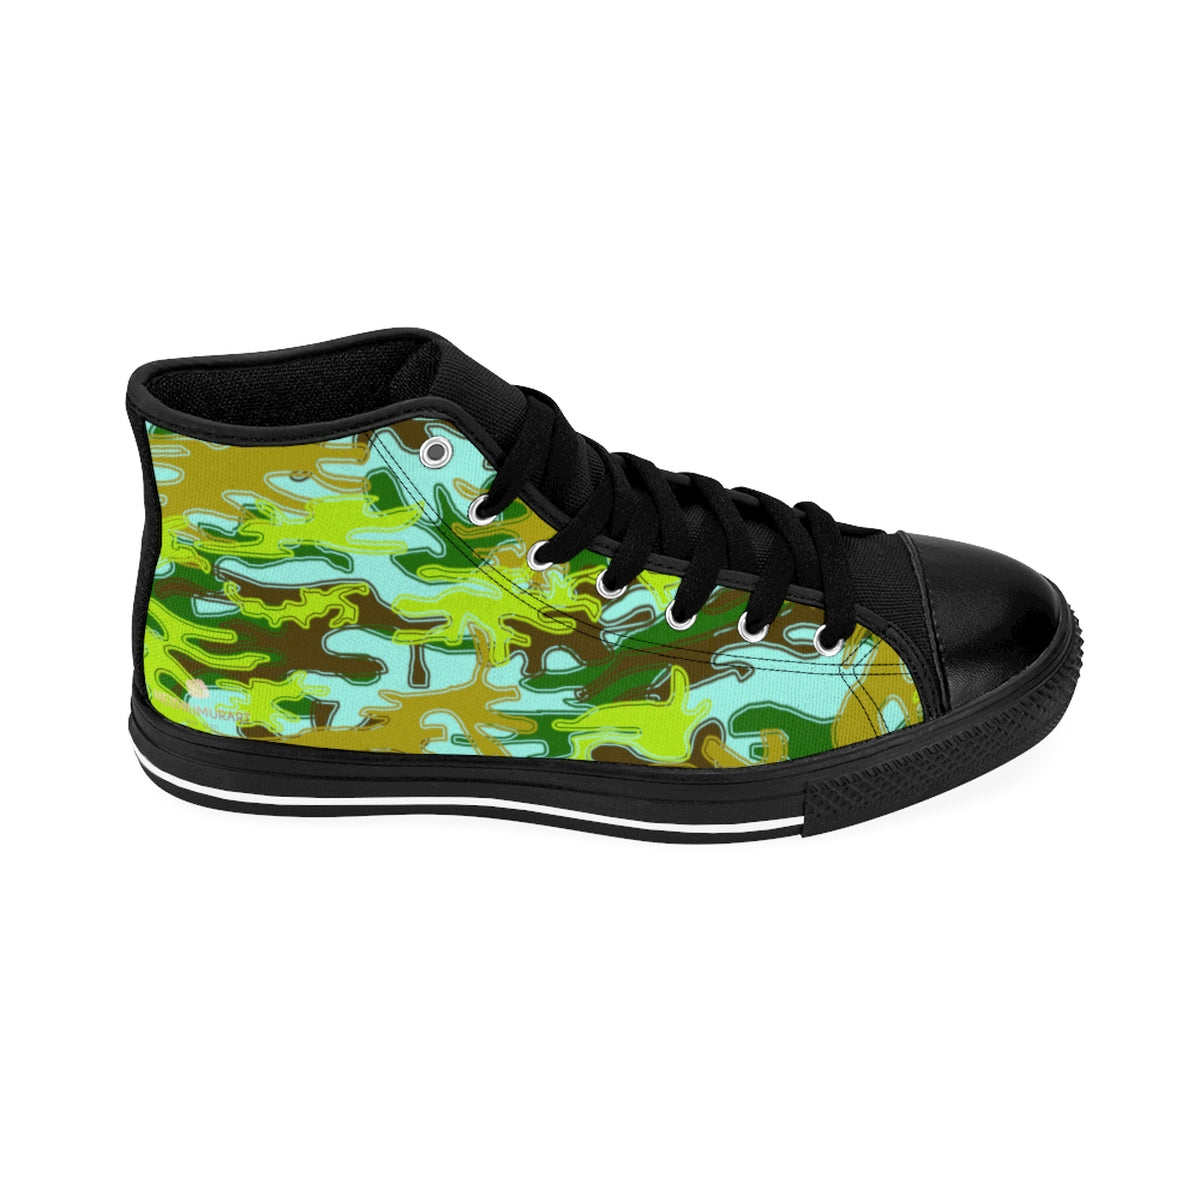 Light Blue Green Camouflage Army Military Print Men's High-top Sneakers Tennis Shoes-Men's High Top Sneakers-Black-US 9-Heidi Kimura Art LLC